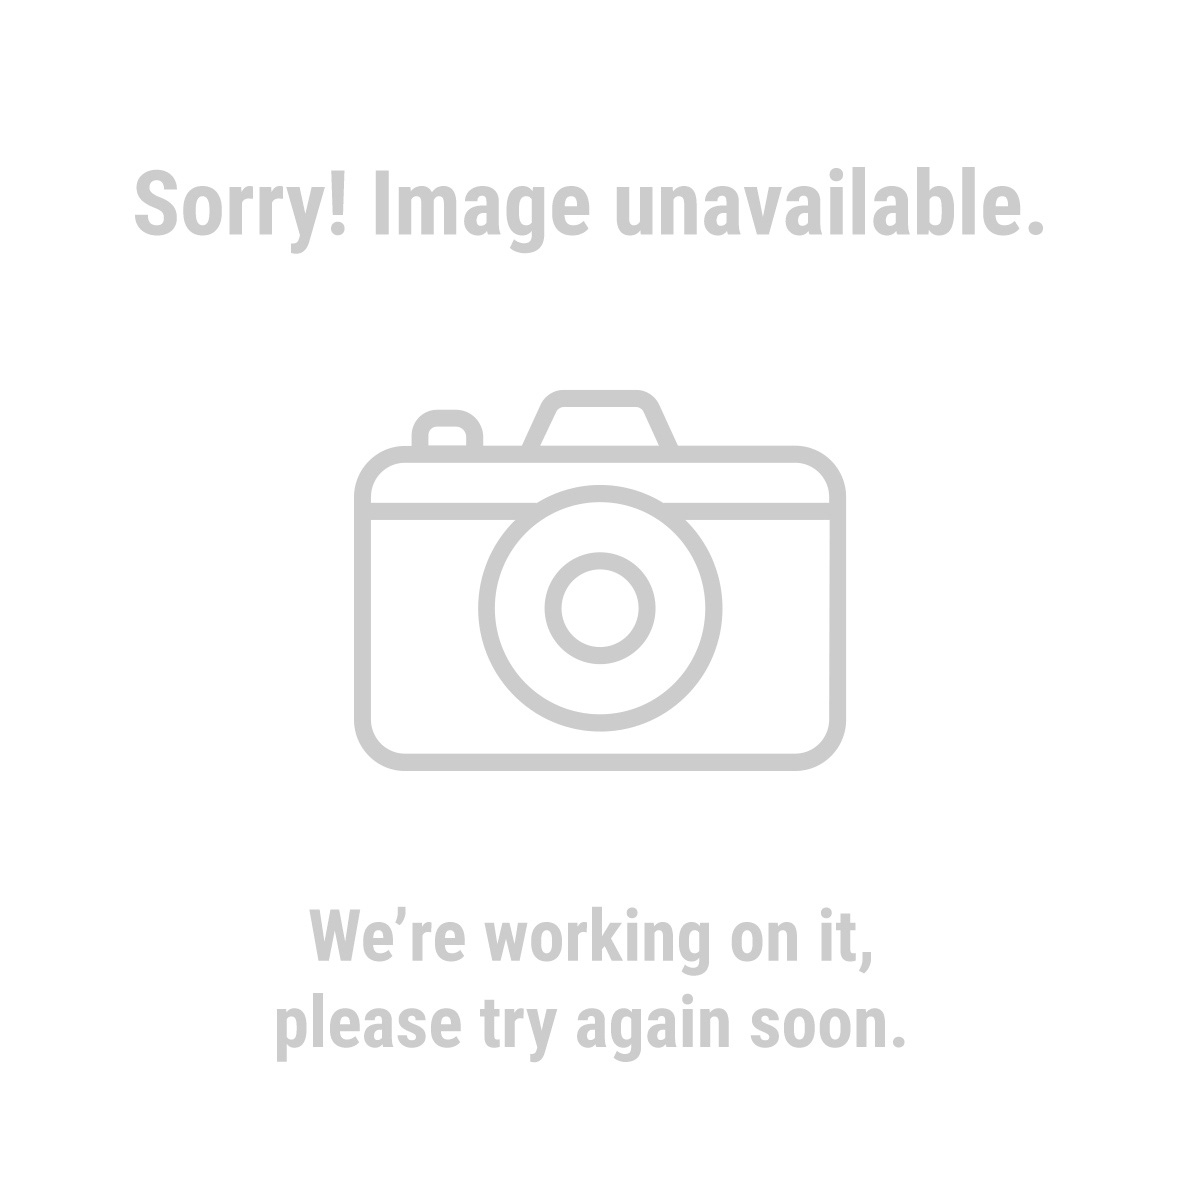 Haul-Master® 62450 1/4 in. x 50 ft. Polypropylene Rope